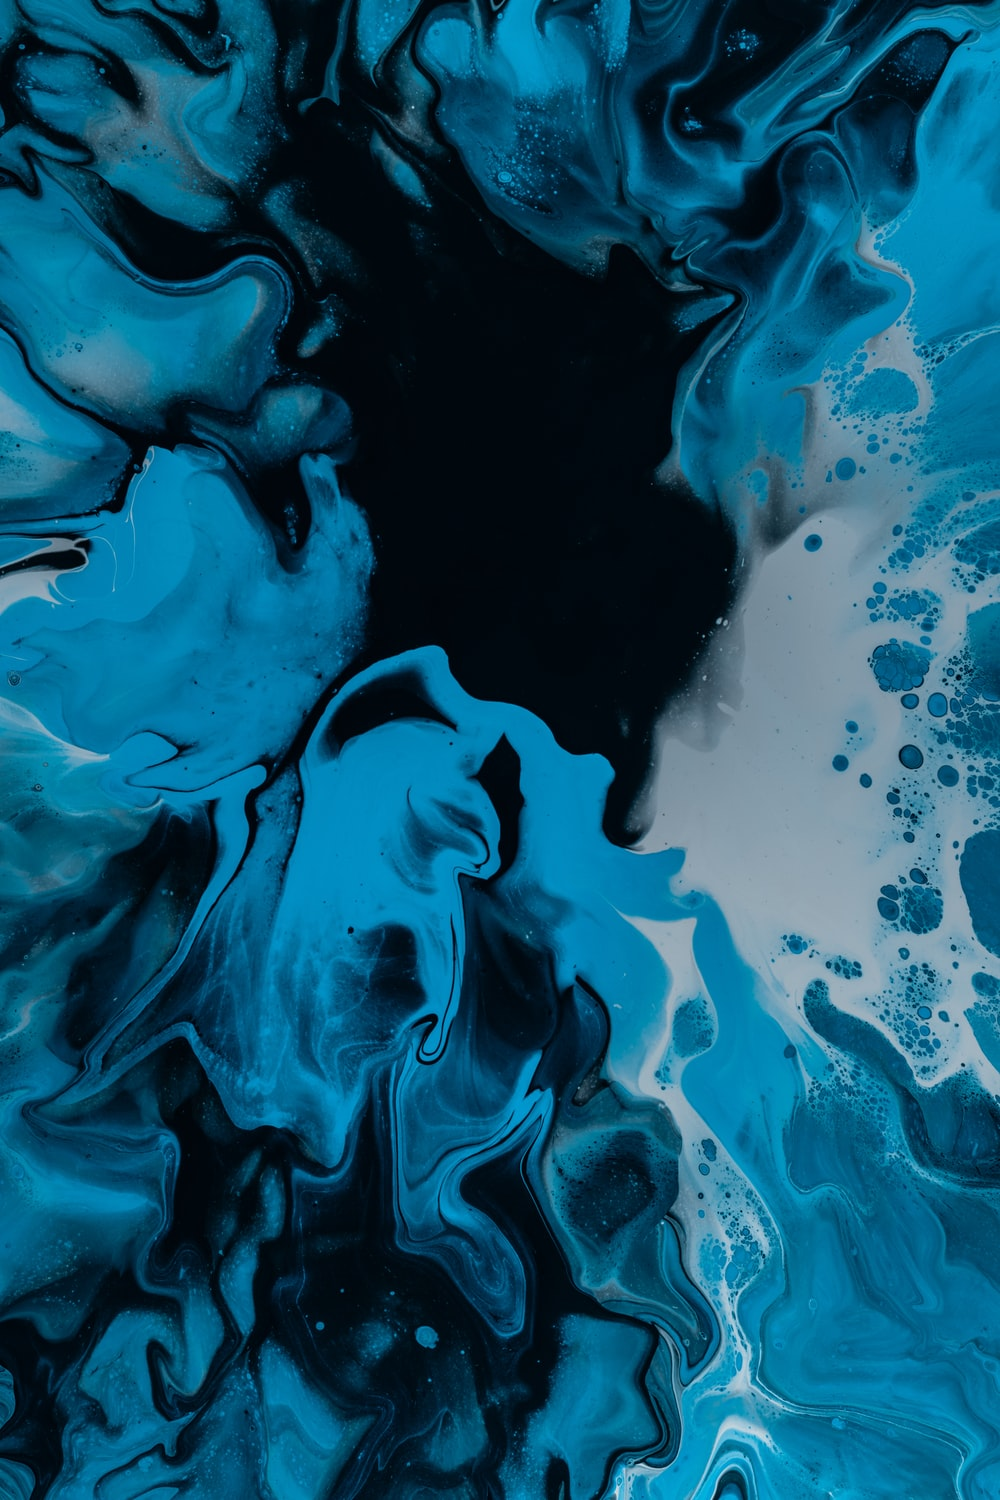 Black White And Blue Abstract Painting Photo Free Art Image On Unsplash